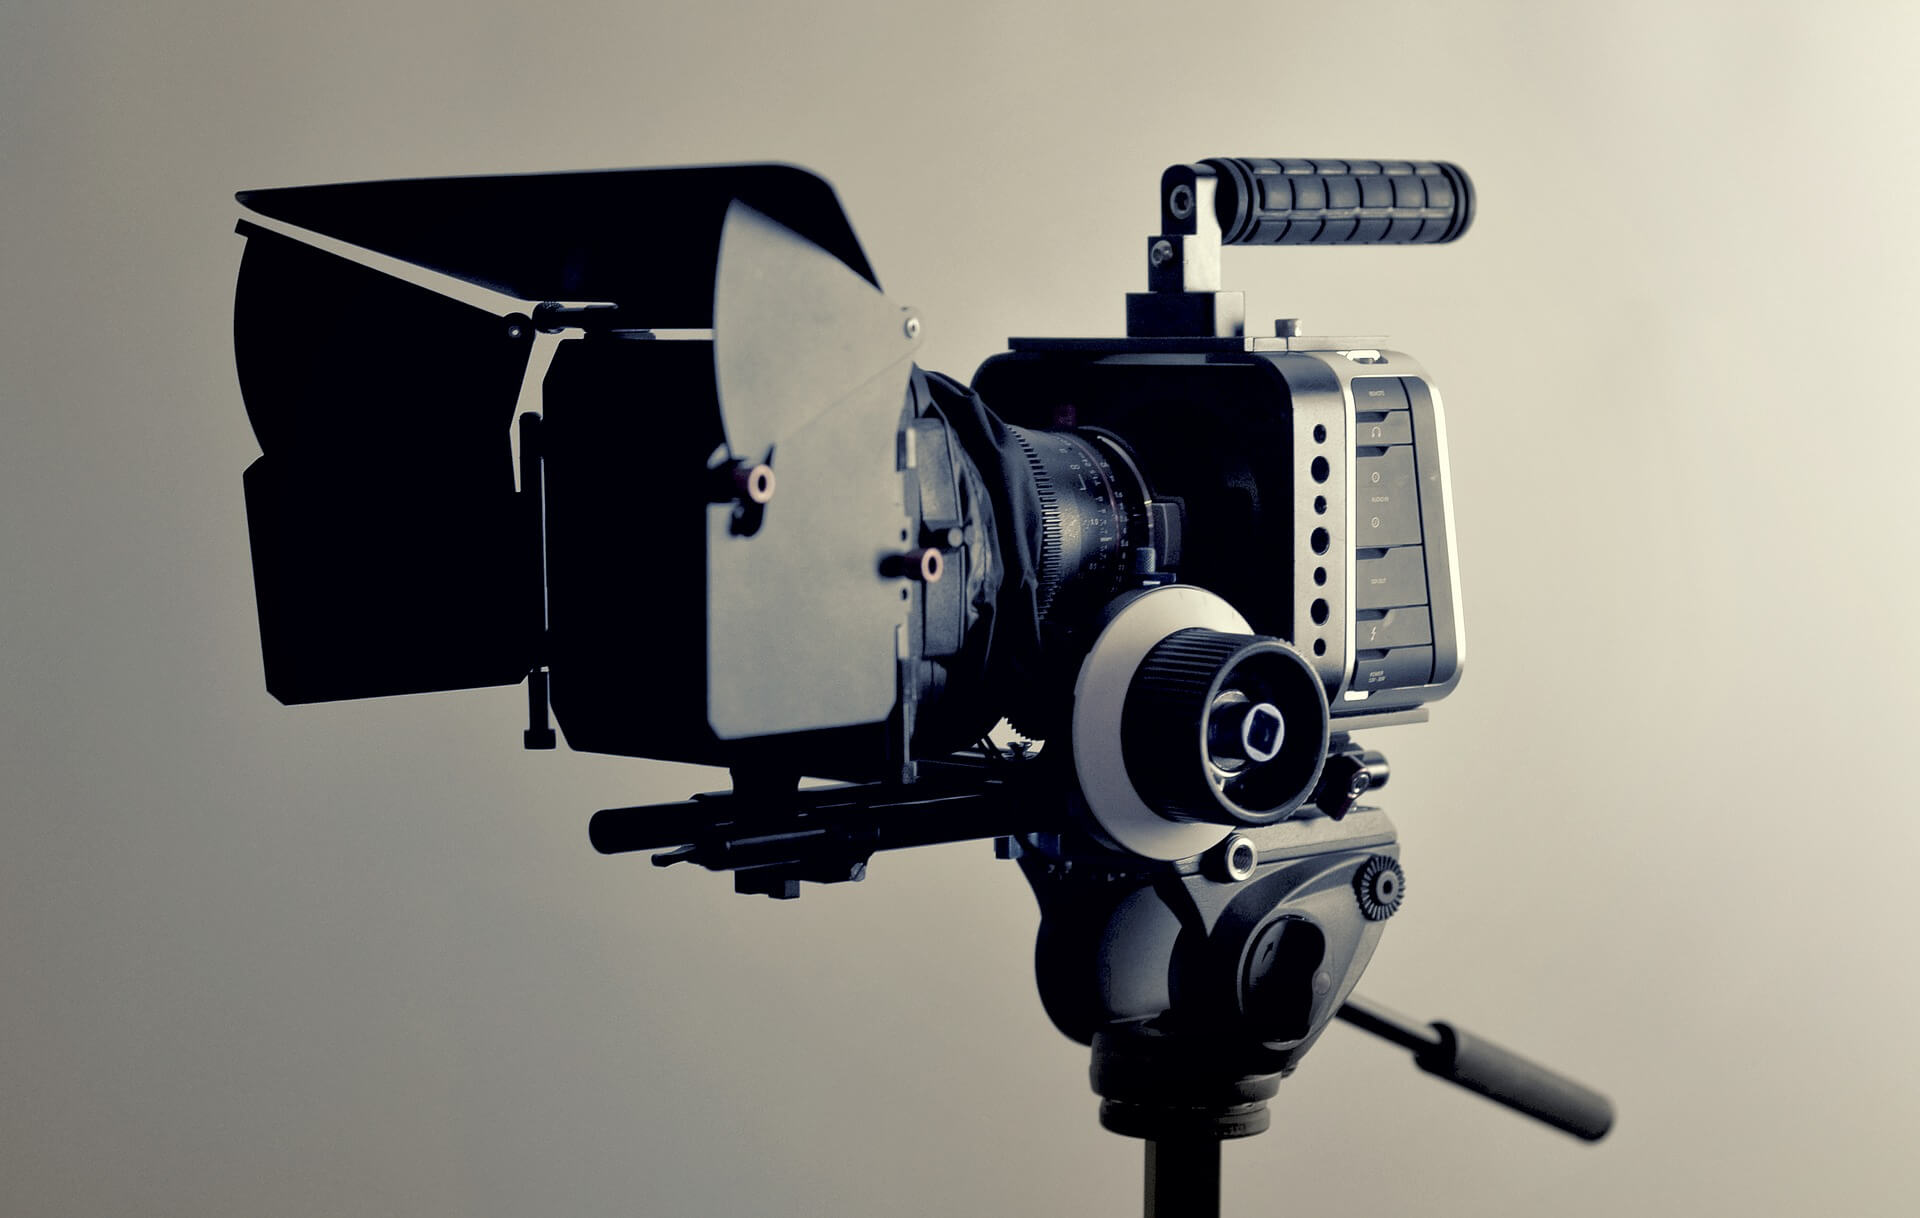 meet the press video podcast camera